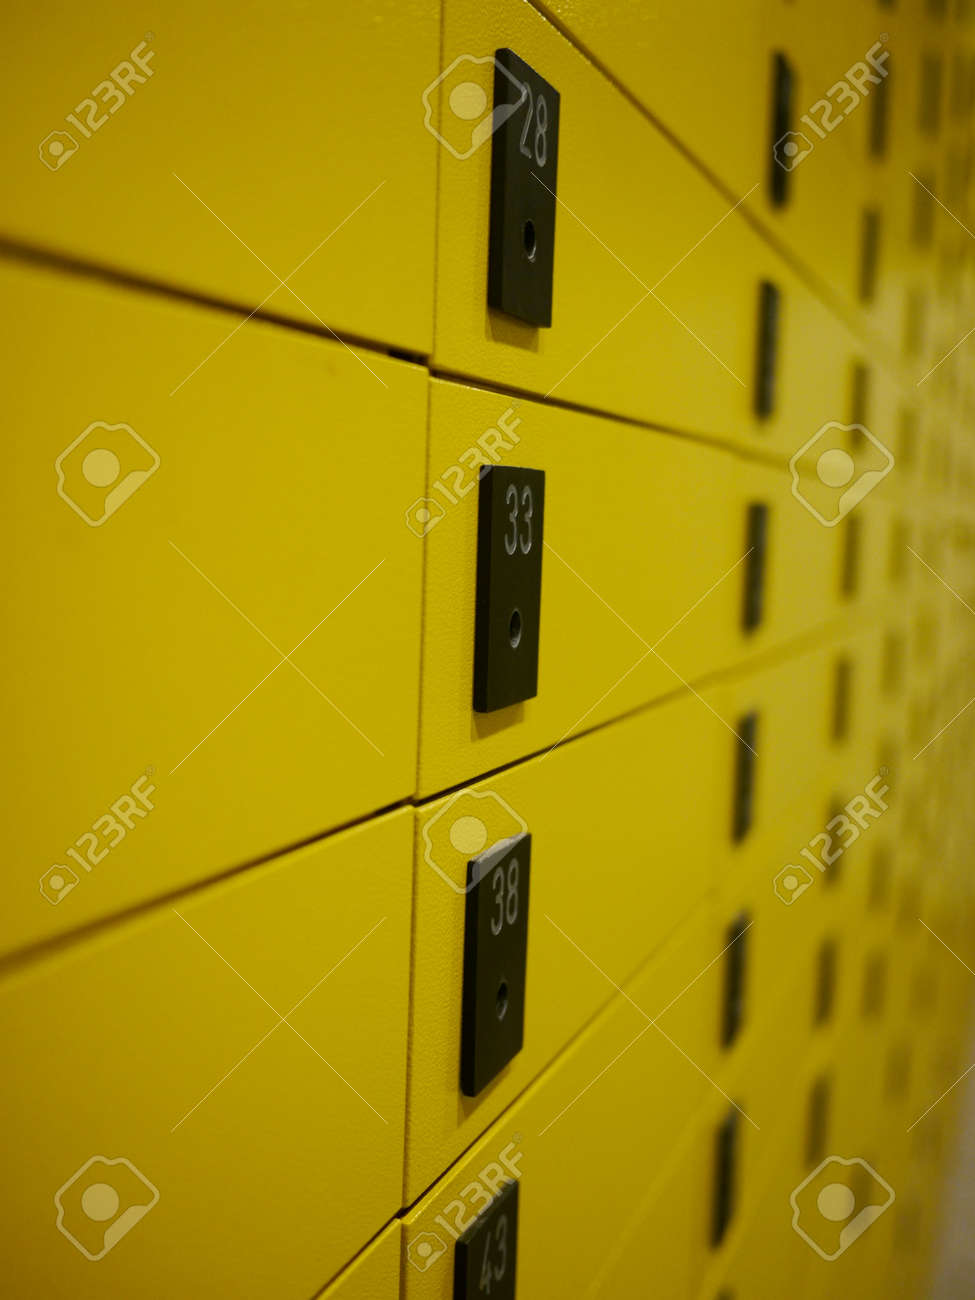 yellow private mail boxes at a post office in Croatia Stock Photo - 9143855